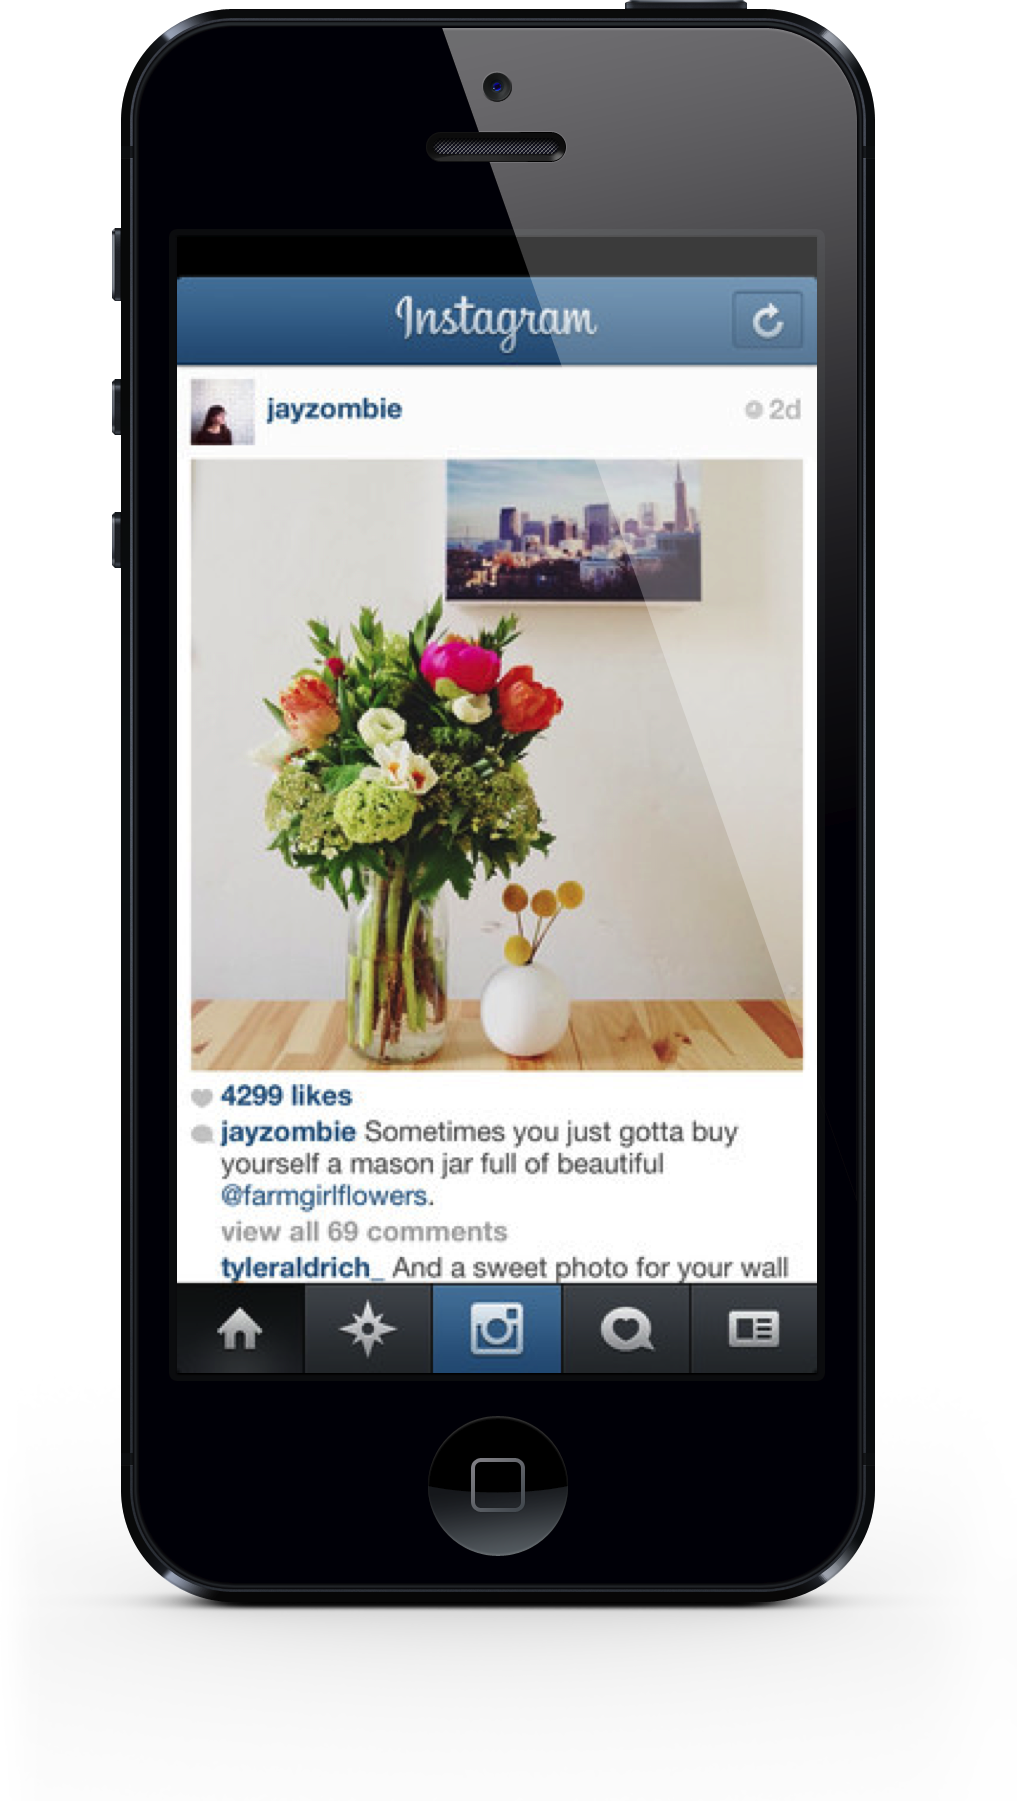 Instagram Now Available For Android: For Now, Facebook's Instagram Video Tops Twitter's Vine